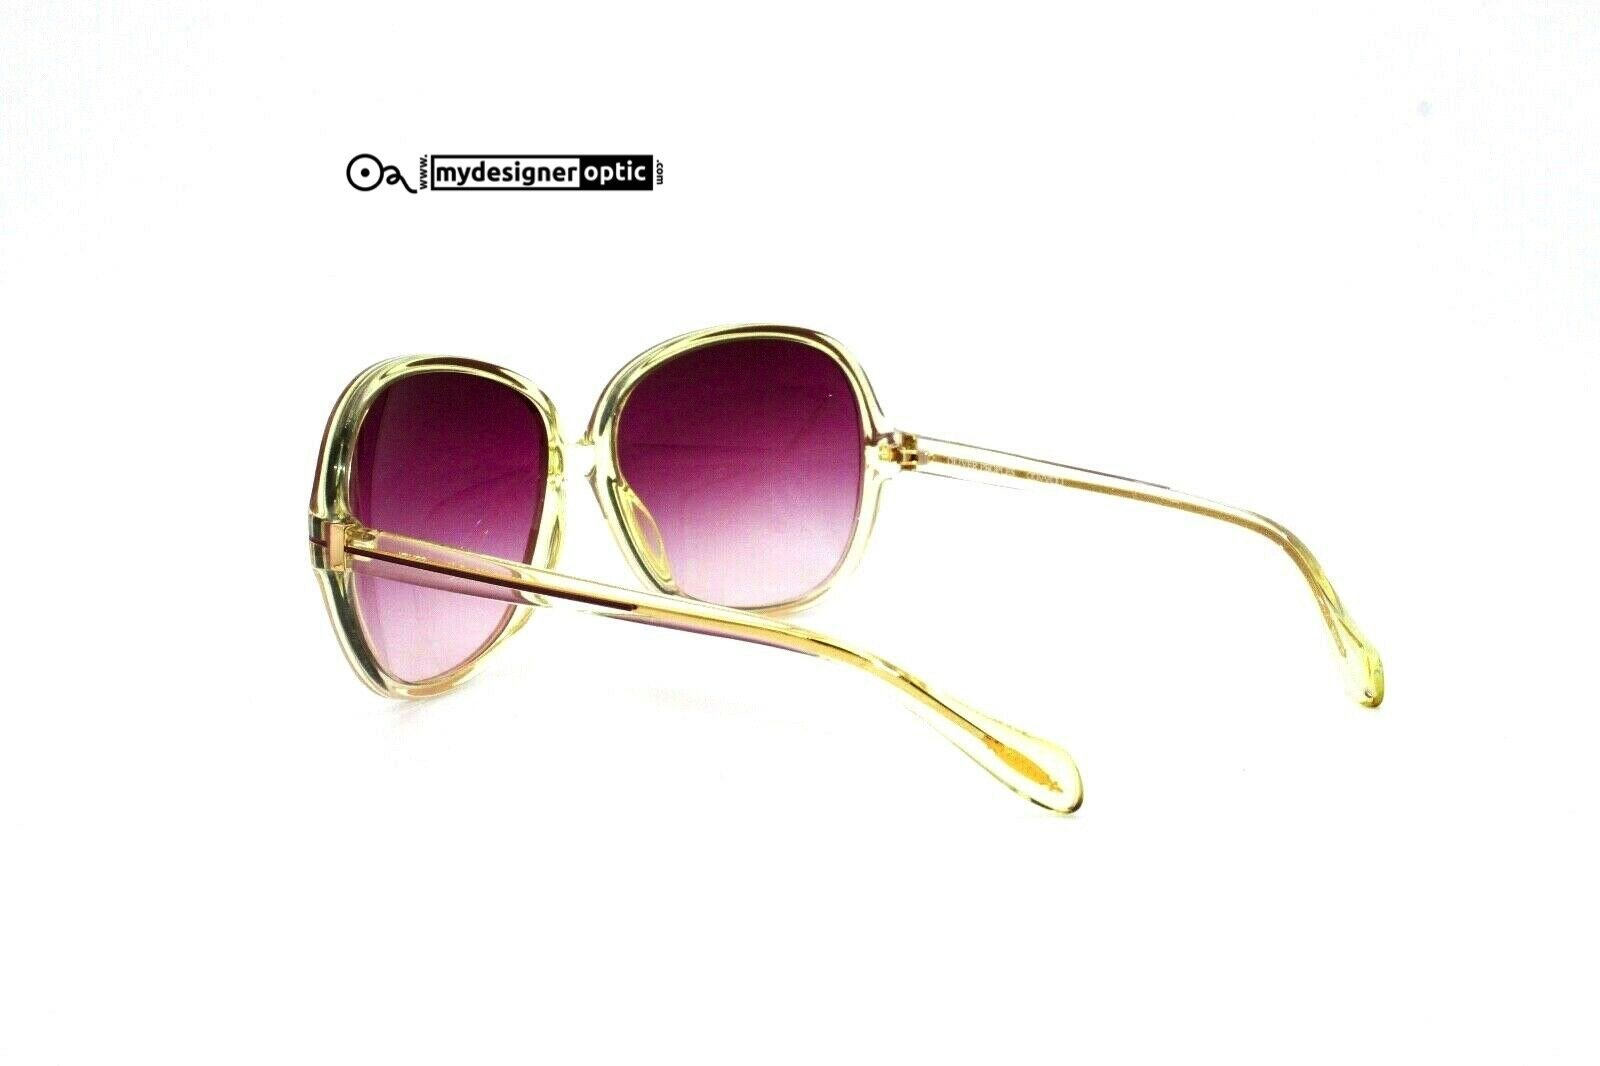 Oliver Peoples Sunglasses 63-16-133 Sabina CRY/RL Made in Japan - Mydesigneroptic